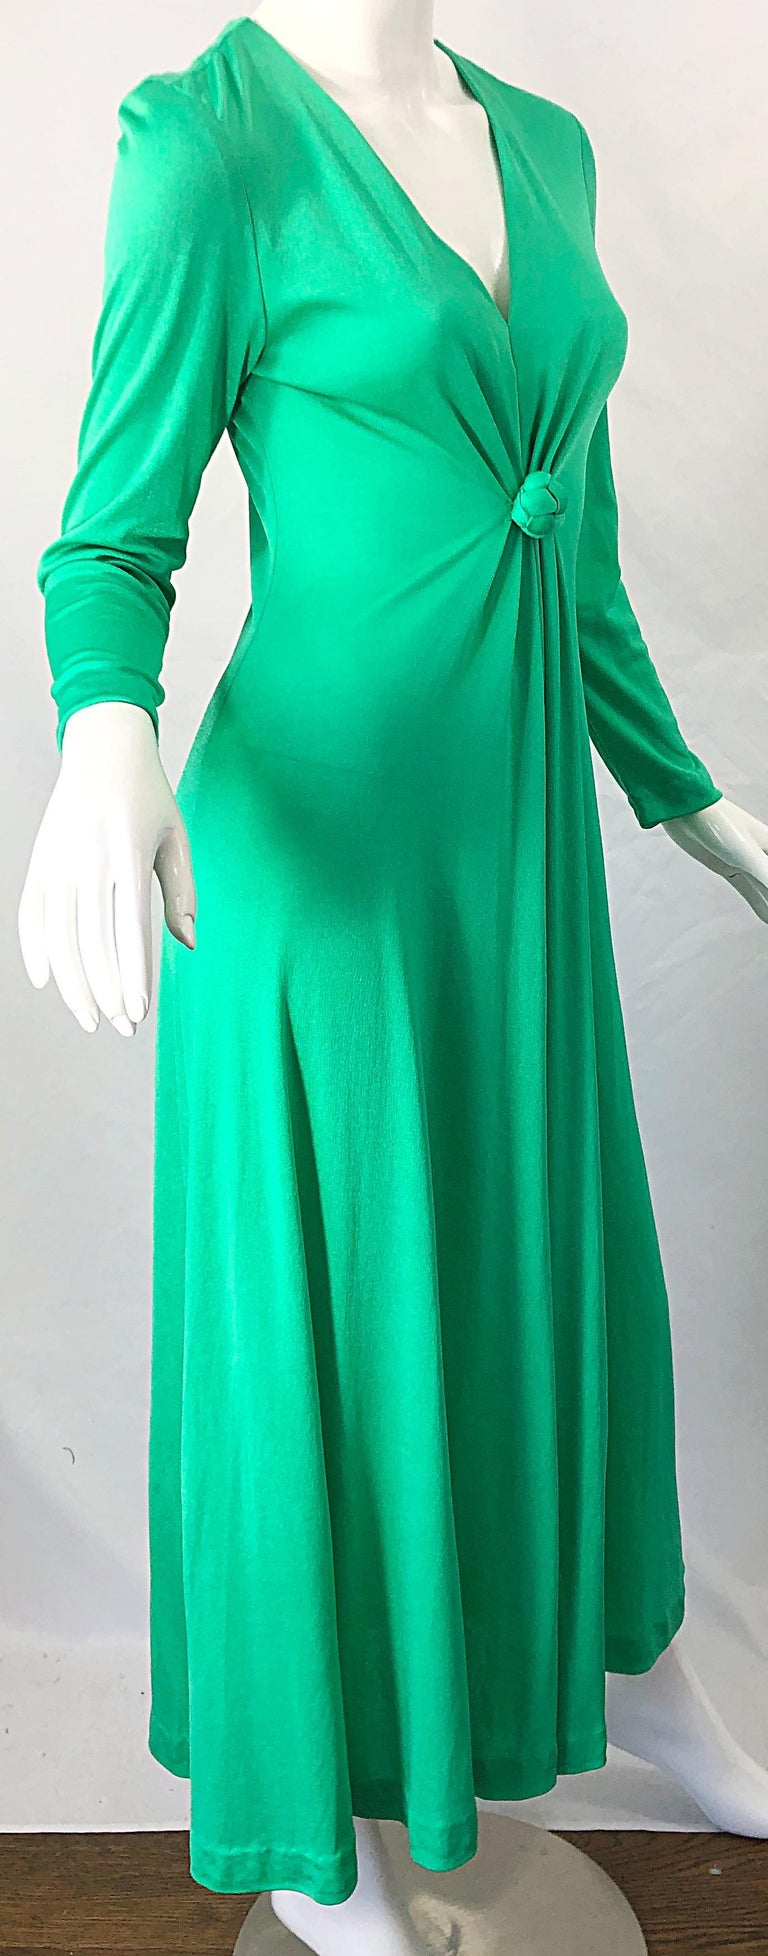 1970s Fredrick's of Hollywood Kelly Green Vintage Jersey 70s Maxi Dress For Sale 3